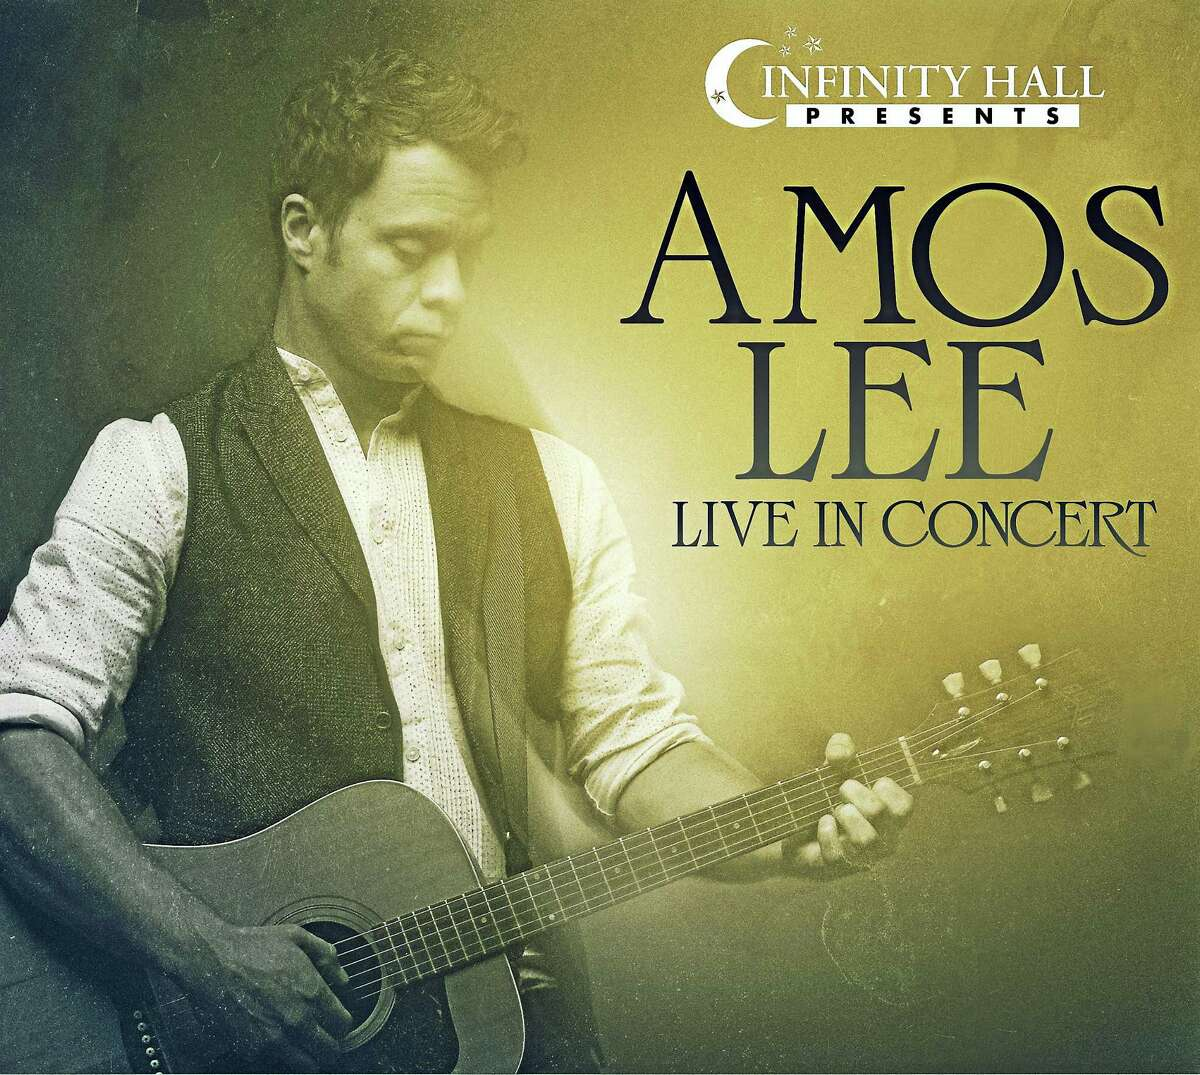 Contributed photoGuitarist Amos Lee performs at the Warner Theatre, in a concert presented by Infinity Hall, on Wednesday, Sept. 7.